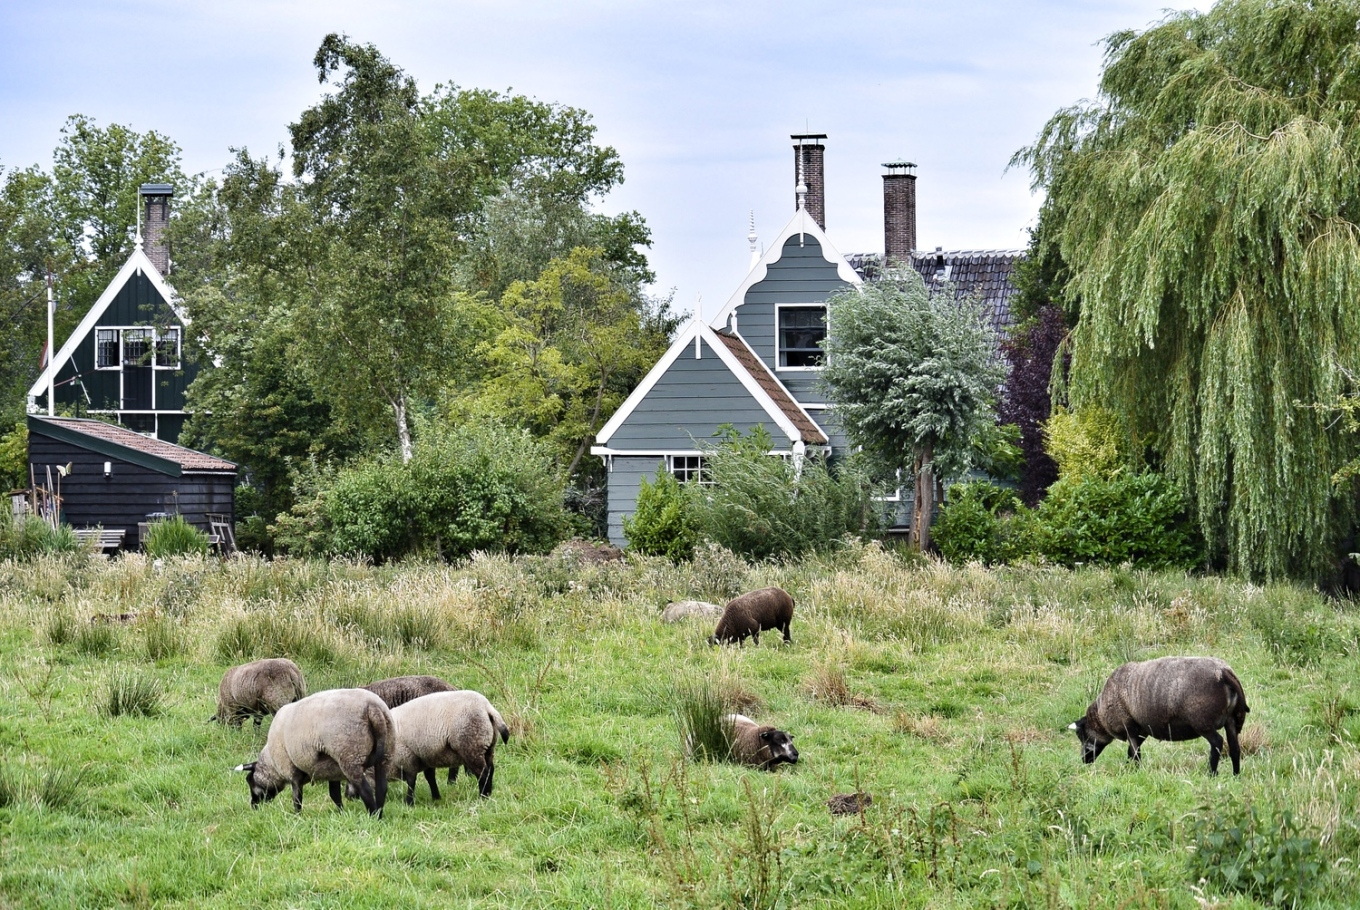 Dutch houses and sheep in Zaanse Schans